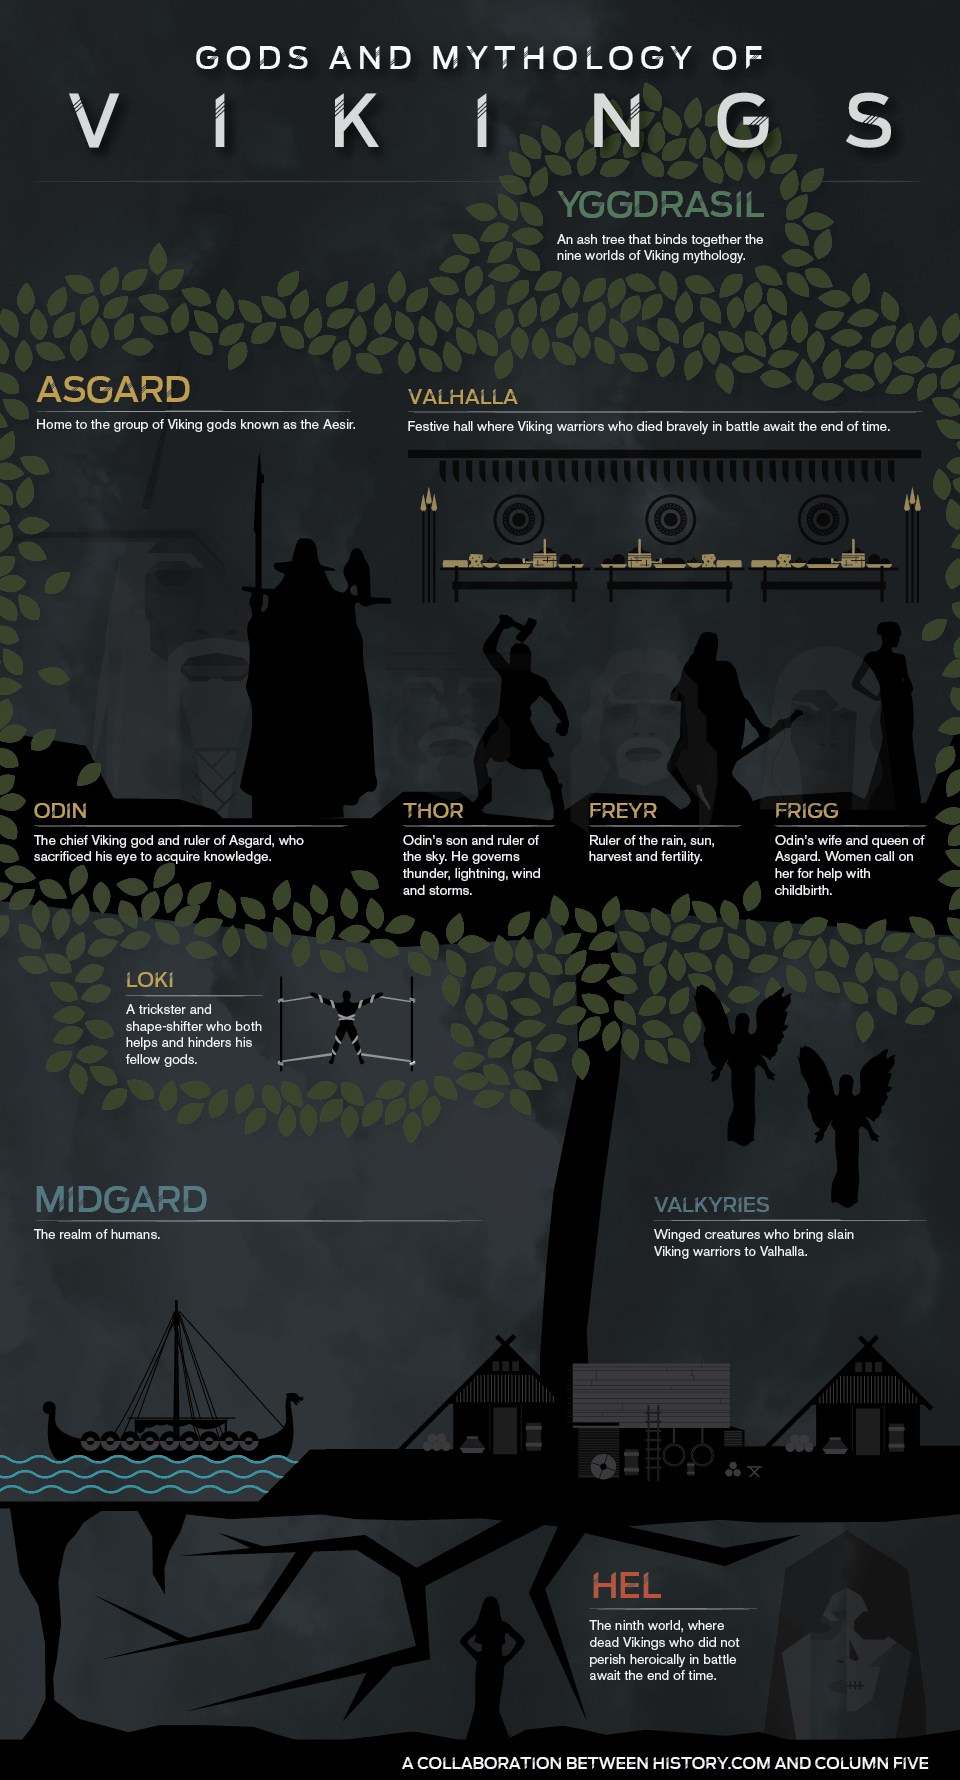 Infographic from the Vikings TV show. I like the style of it, even if the info's a little sparse. #norsemythology